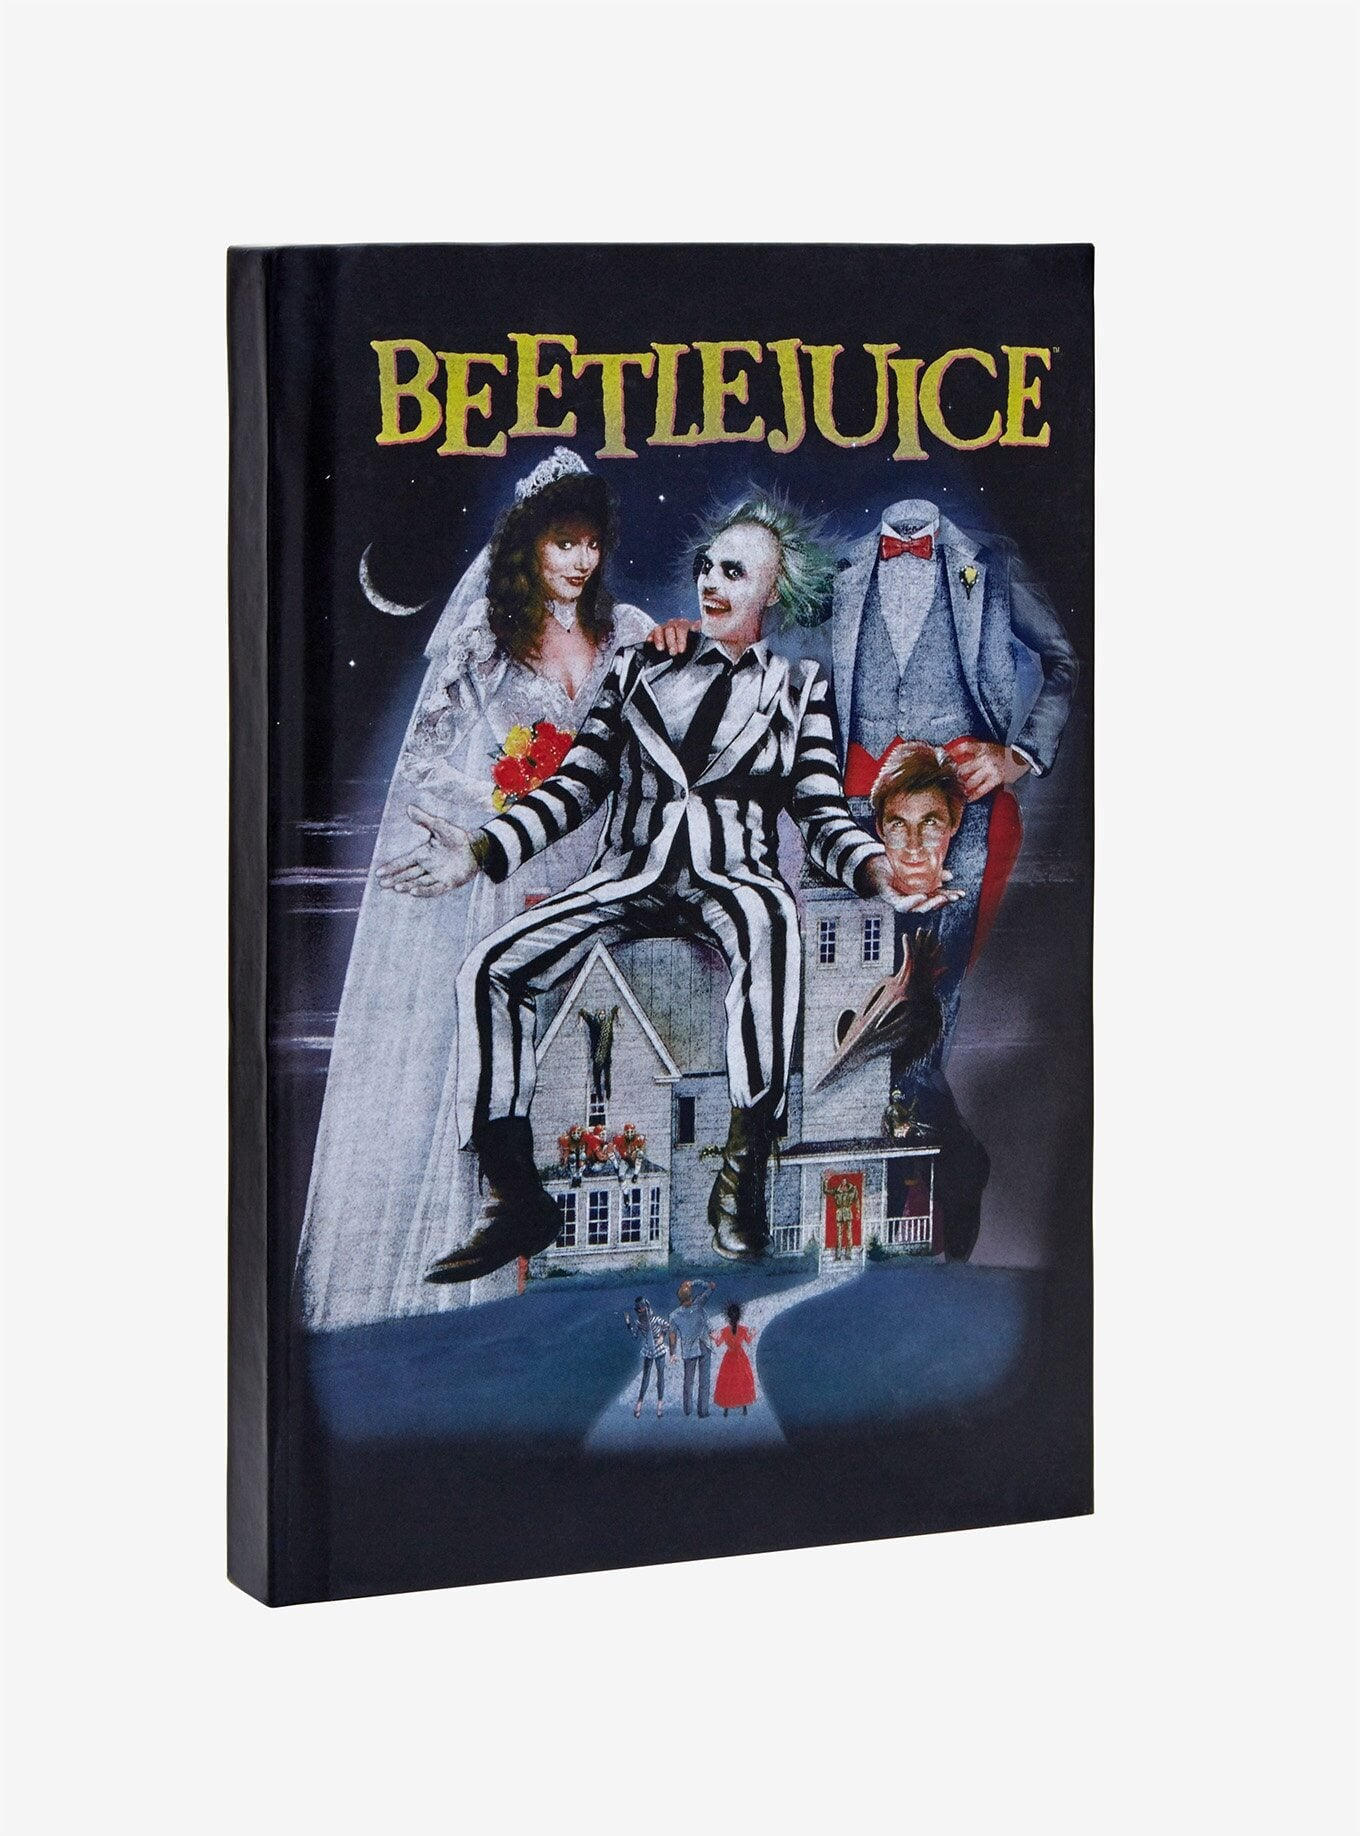 Hot Topic Beetlejuice Collection Popsugar Smart Living